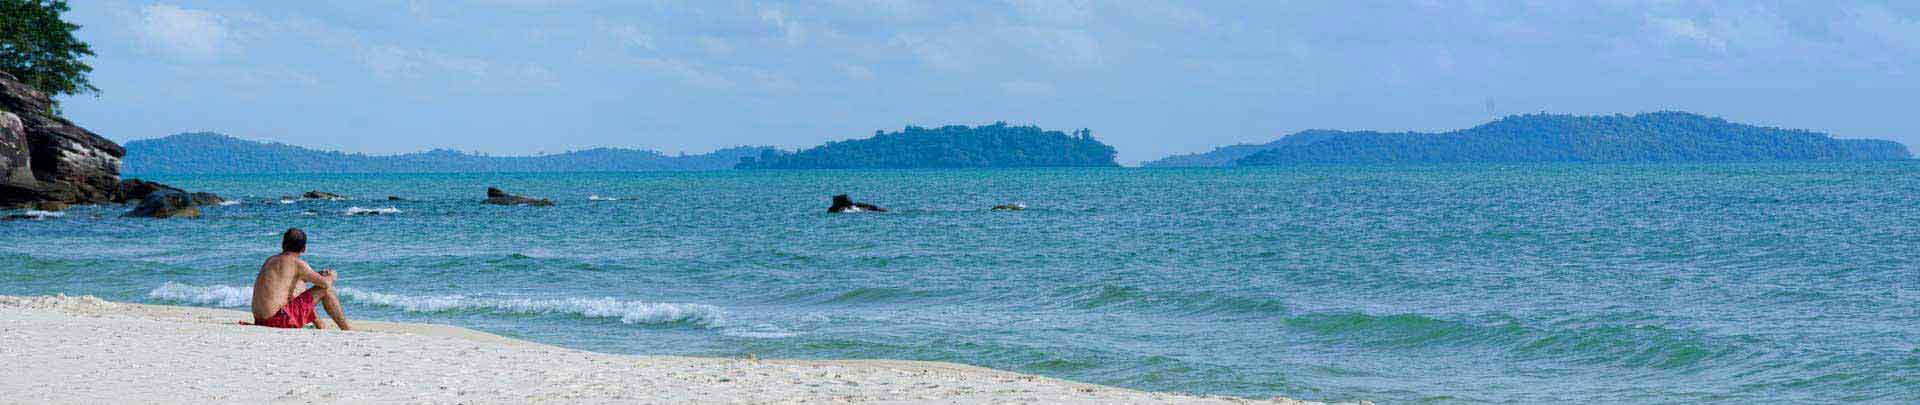 "The Century Beach Package<p><i>A Private Tour to Sihanoukville, price from 62US$</i><p><a class=""btn btn-danger rounded"" href=""http://www.tourismcambodia.com/tours/cambodia/beach-break-holidays/76/the-century-beach-package.htm"">VIEW DETAILS</a></p>"